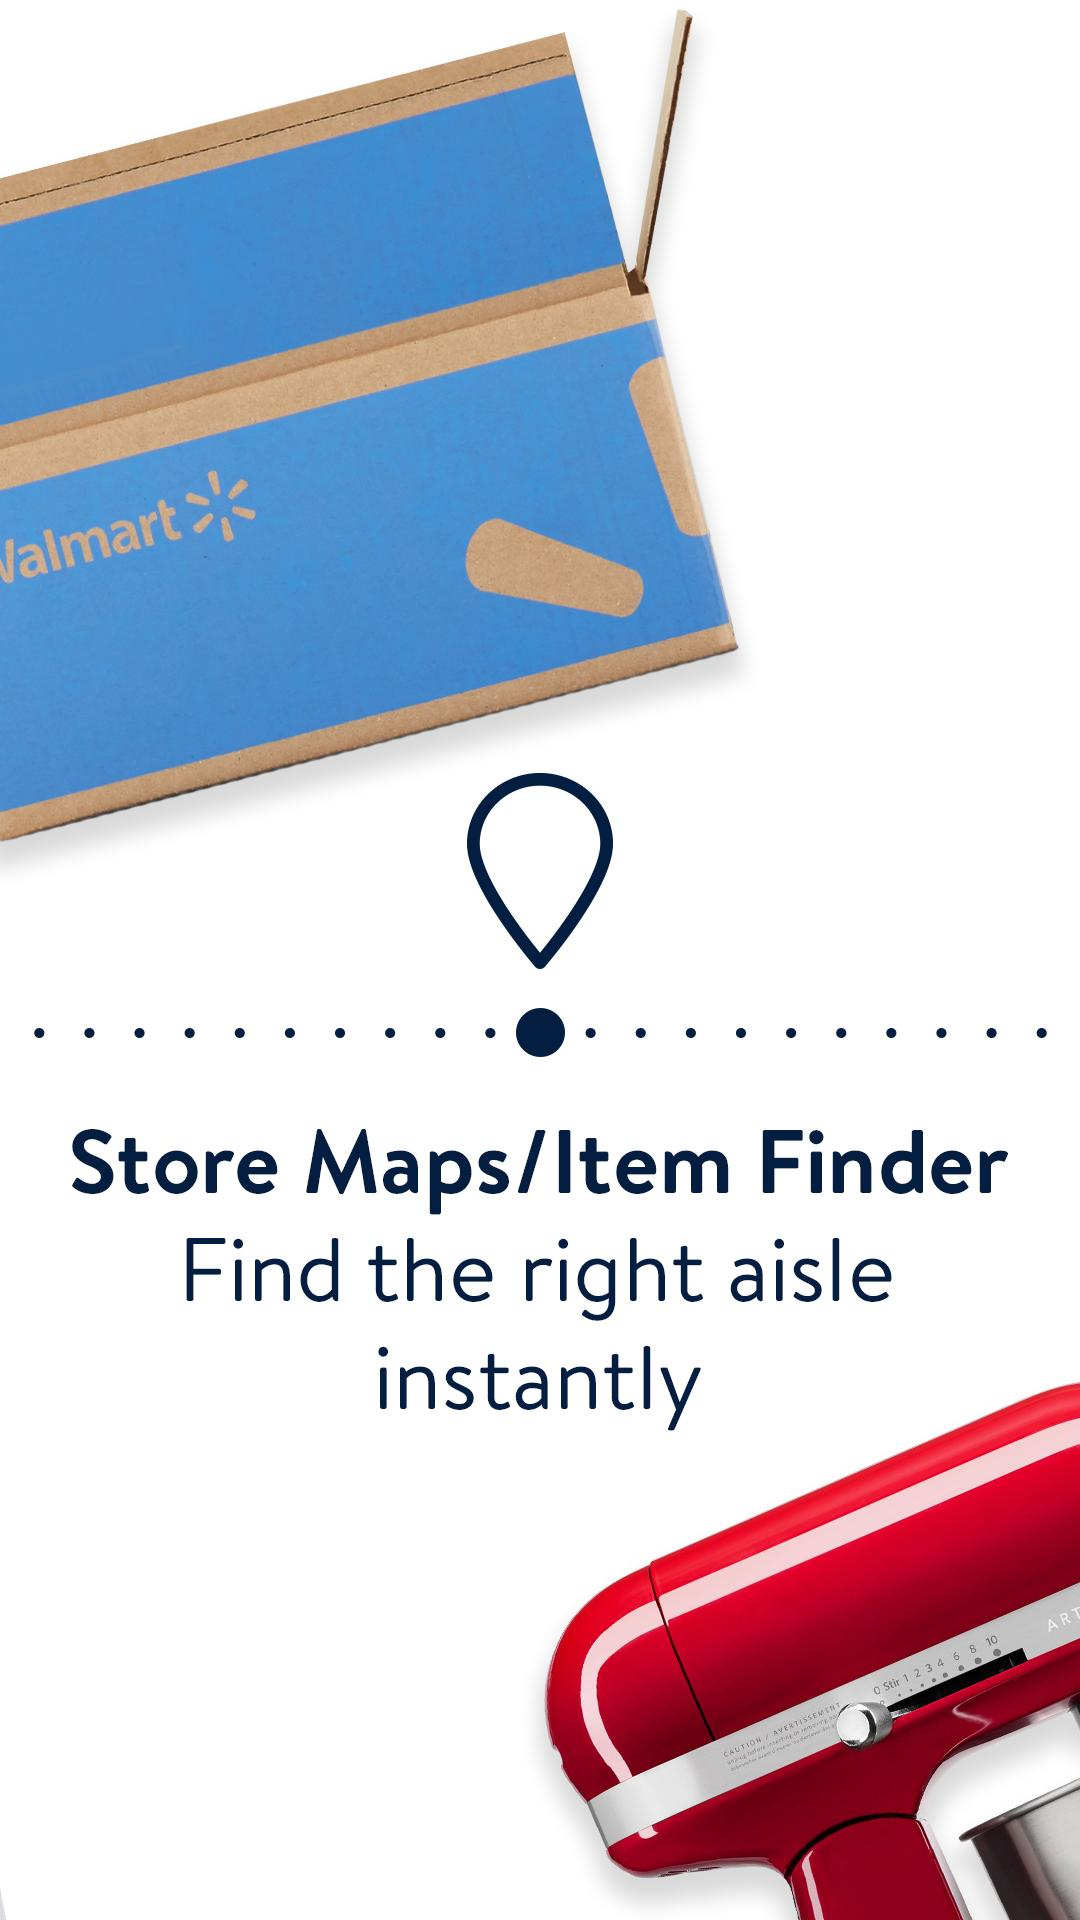 Walmart for Android - APK Download